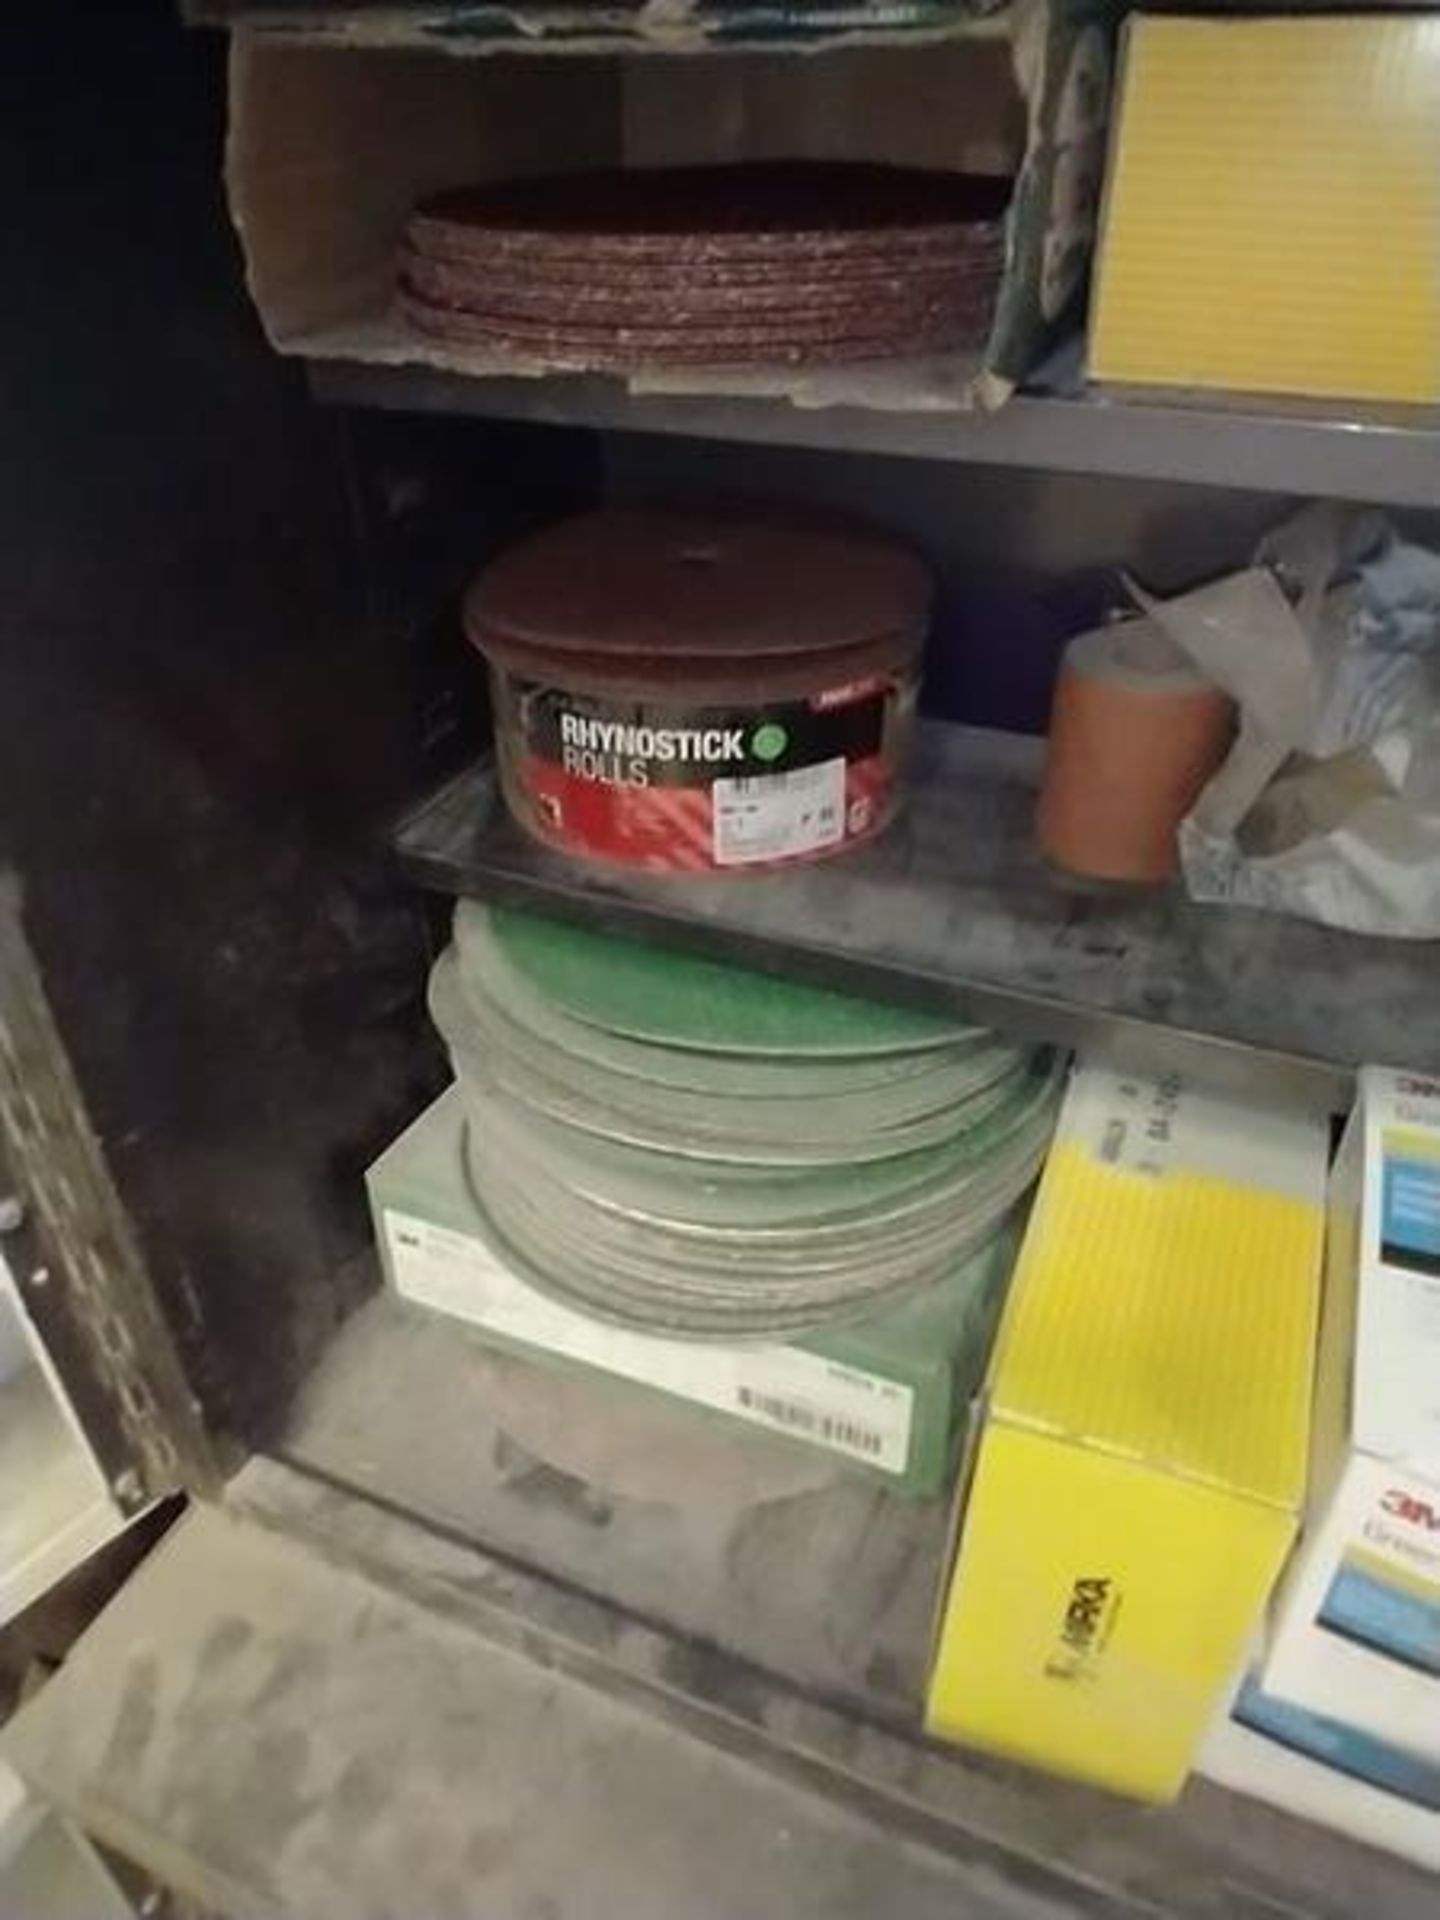 LOT OF ABRASIVE SHEETS, DISCS AND SANDING BLOCKS ON AND INSIDE CABINET (CABINET SOLD SEPARATELY) - Image 3 of 7